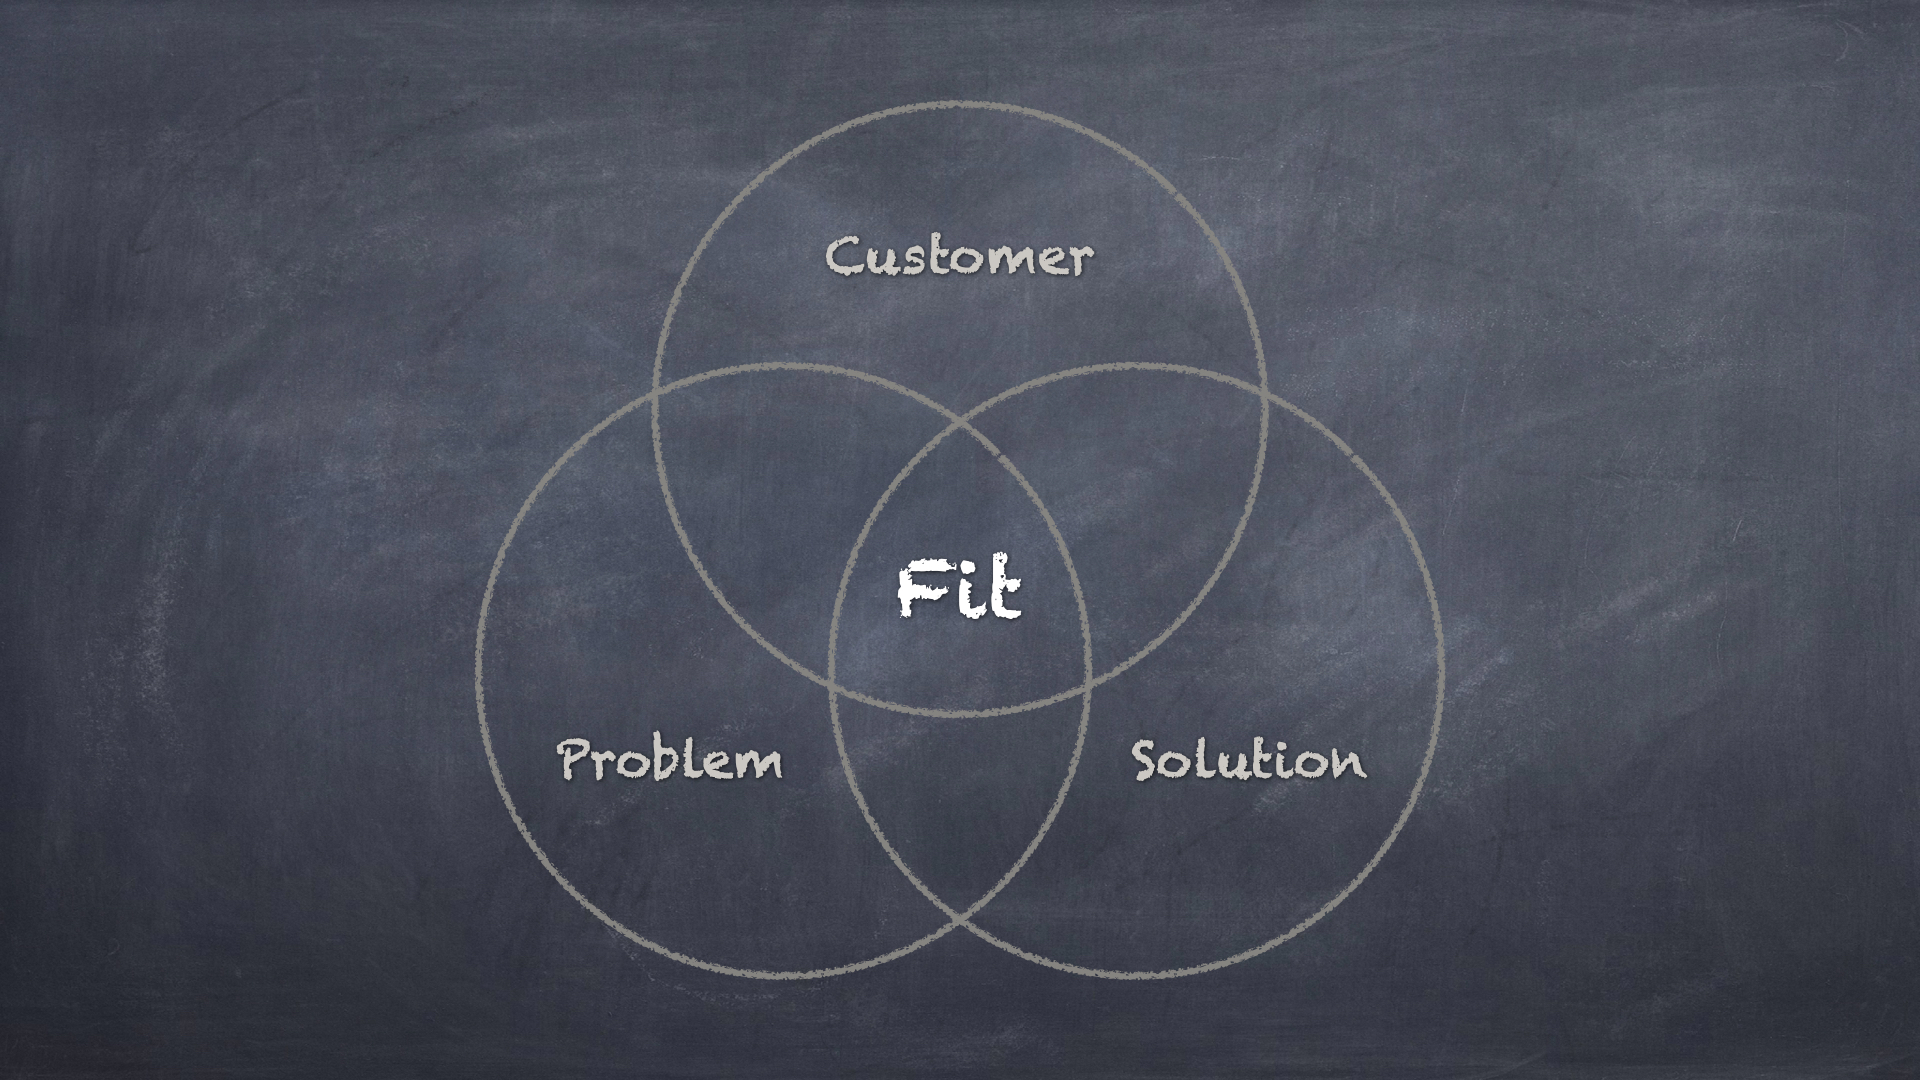 Customer-Problem-Solution Fit - Image by the Author